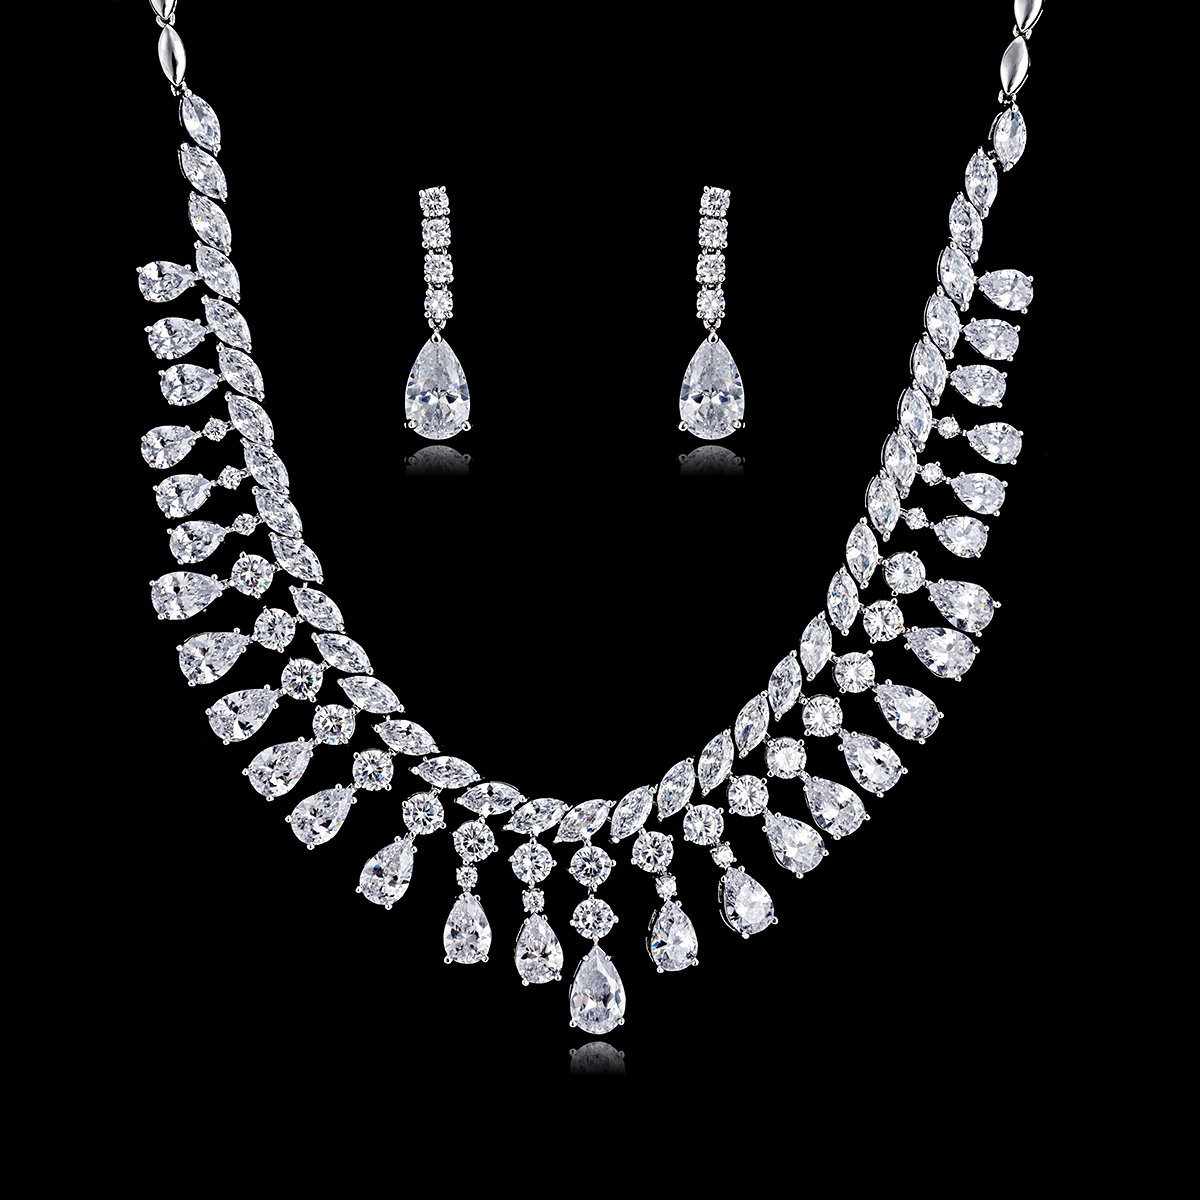 Trendy Crystal CZ Cubic Zirconia Bridal Wedding Drop Necklace Earring Set for Women Accessories CN10179Trendy Crystal CZ Cubic Zirconia Bridal Wedding Drop Necklace Earring Set for Women Accessories CN10179